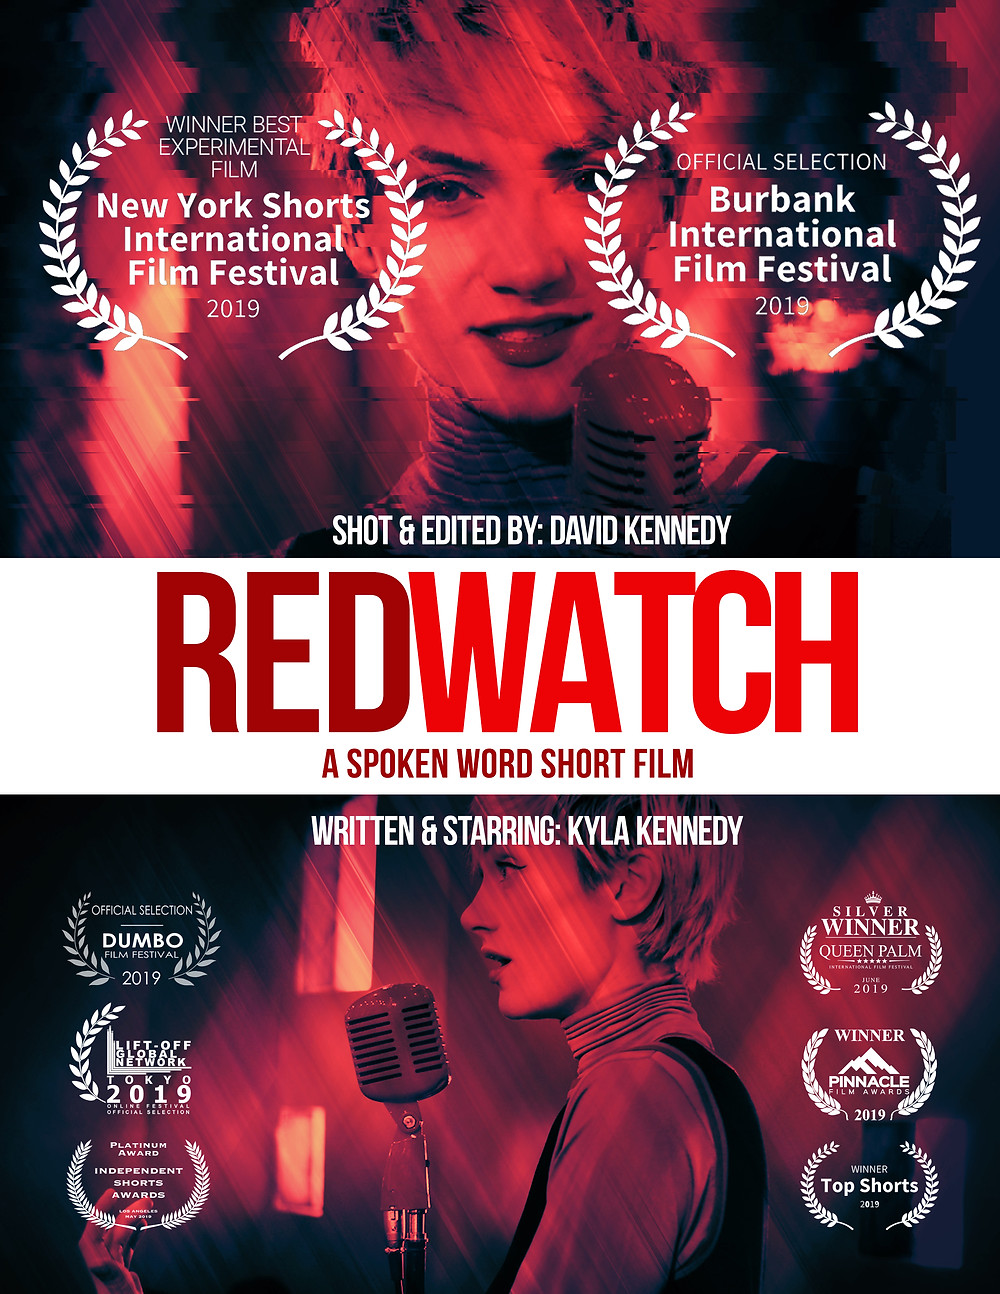 we recently made a short spoken word film written by and Starring Kyla Kennedy. The film has now won over 8 awards including Best editing and Actress. Red Watch has also bee selected to premiere here in CA at the 2019 Burbank Int. Film Festival in September.